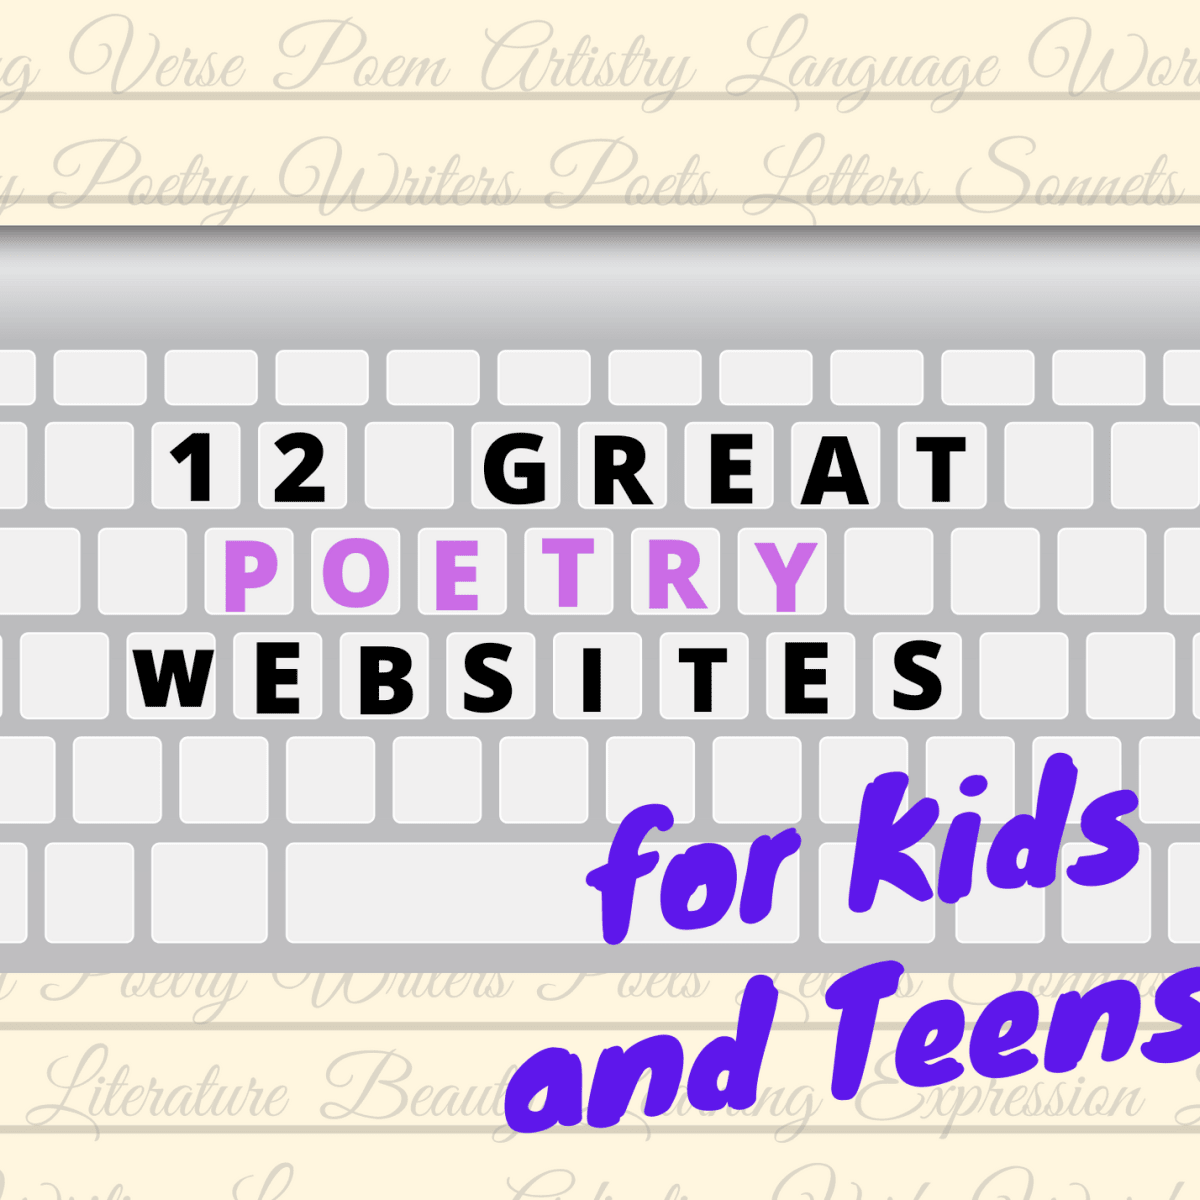 hight resolution of Best Poetry Websites and Online Interactives for Kids - WeHaveKids - Family